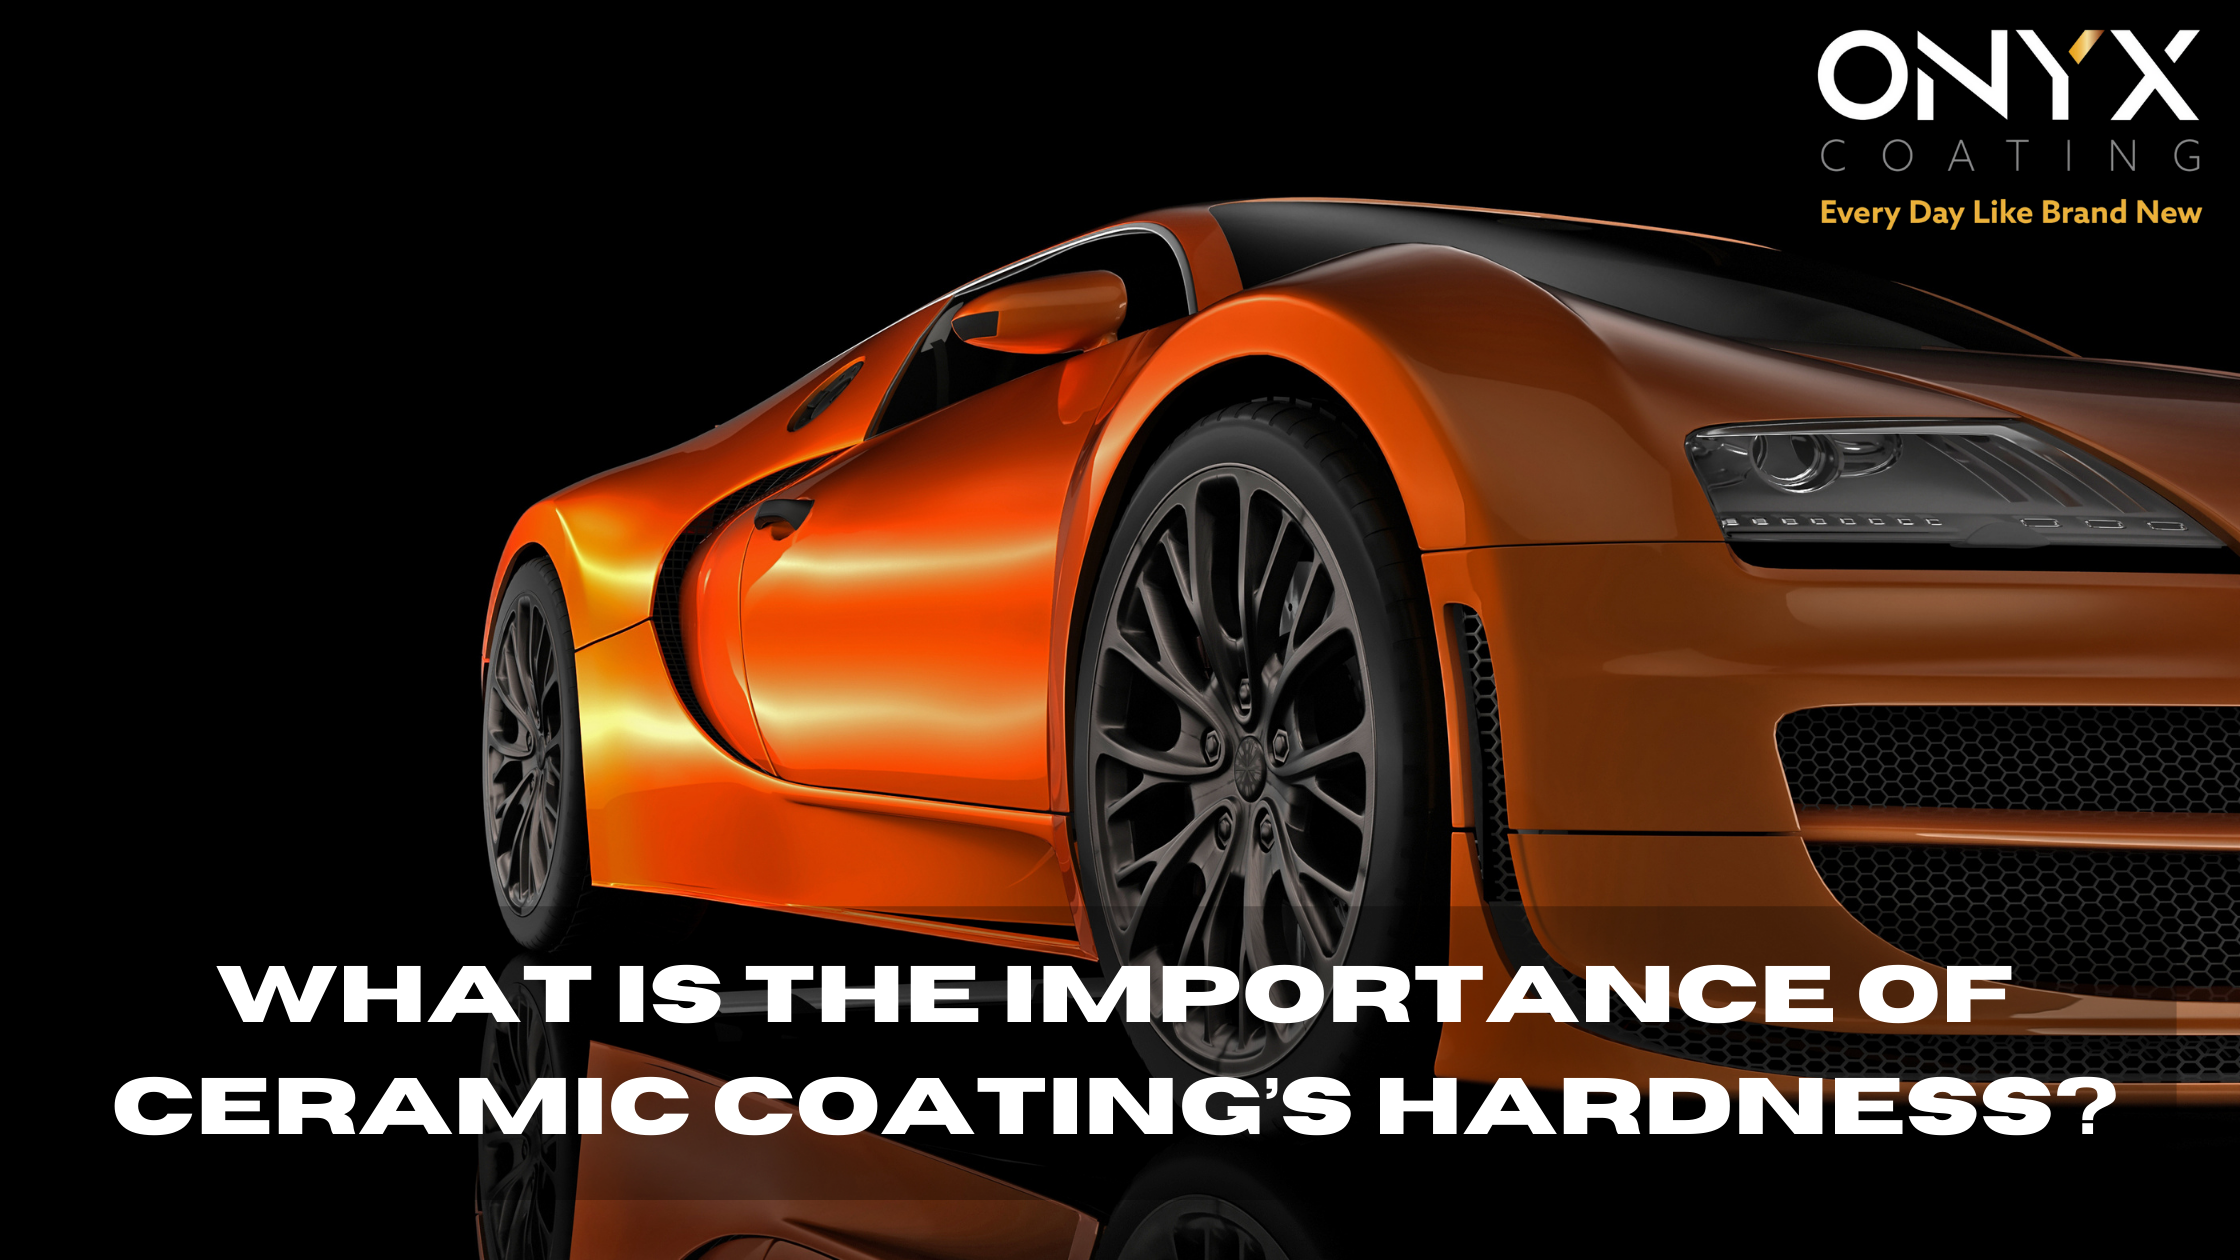 What Is The Importance of Ceramic Coating's Hardness